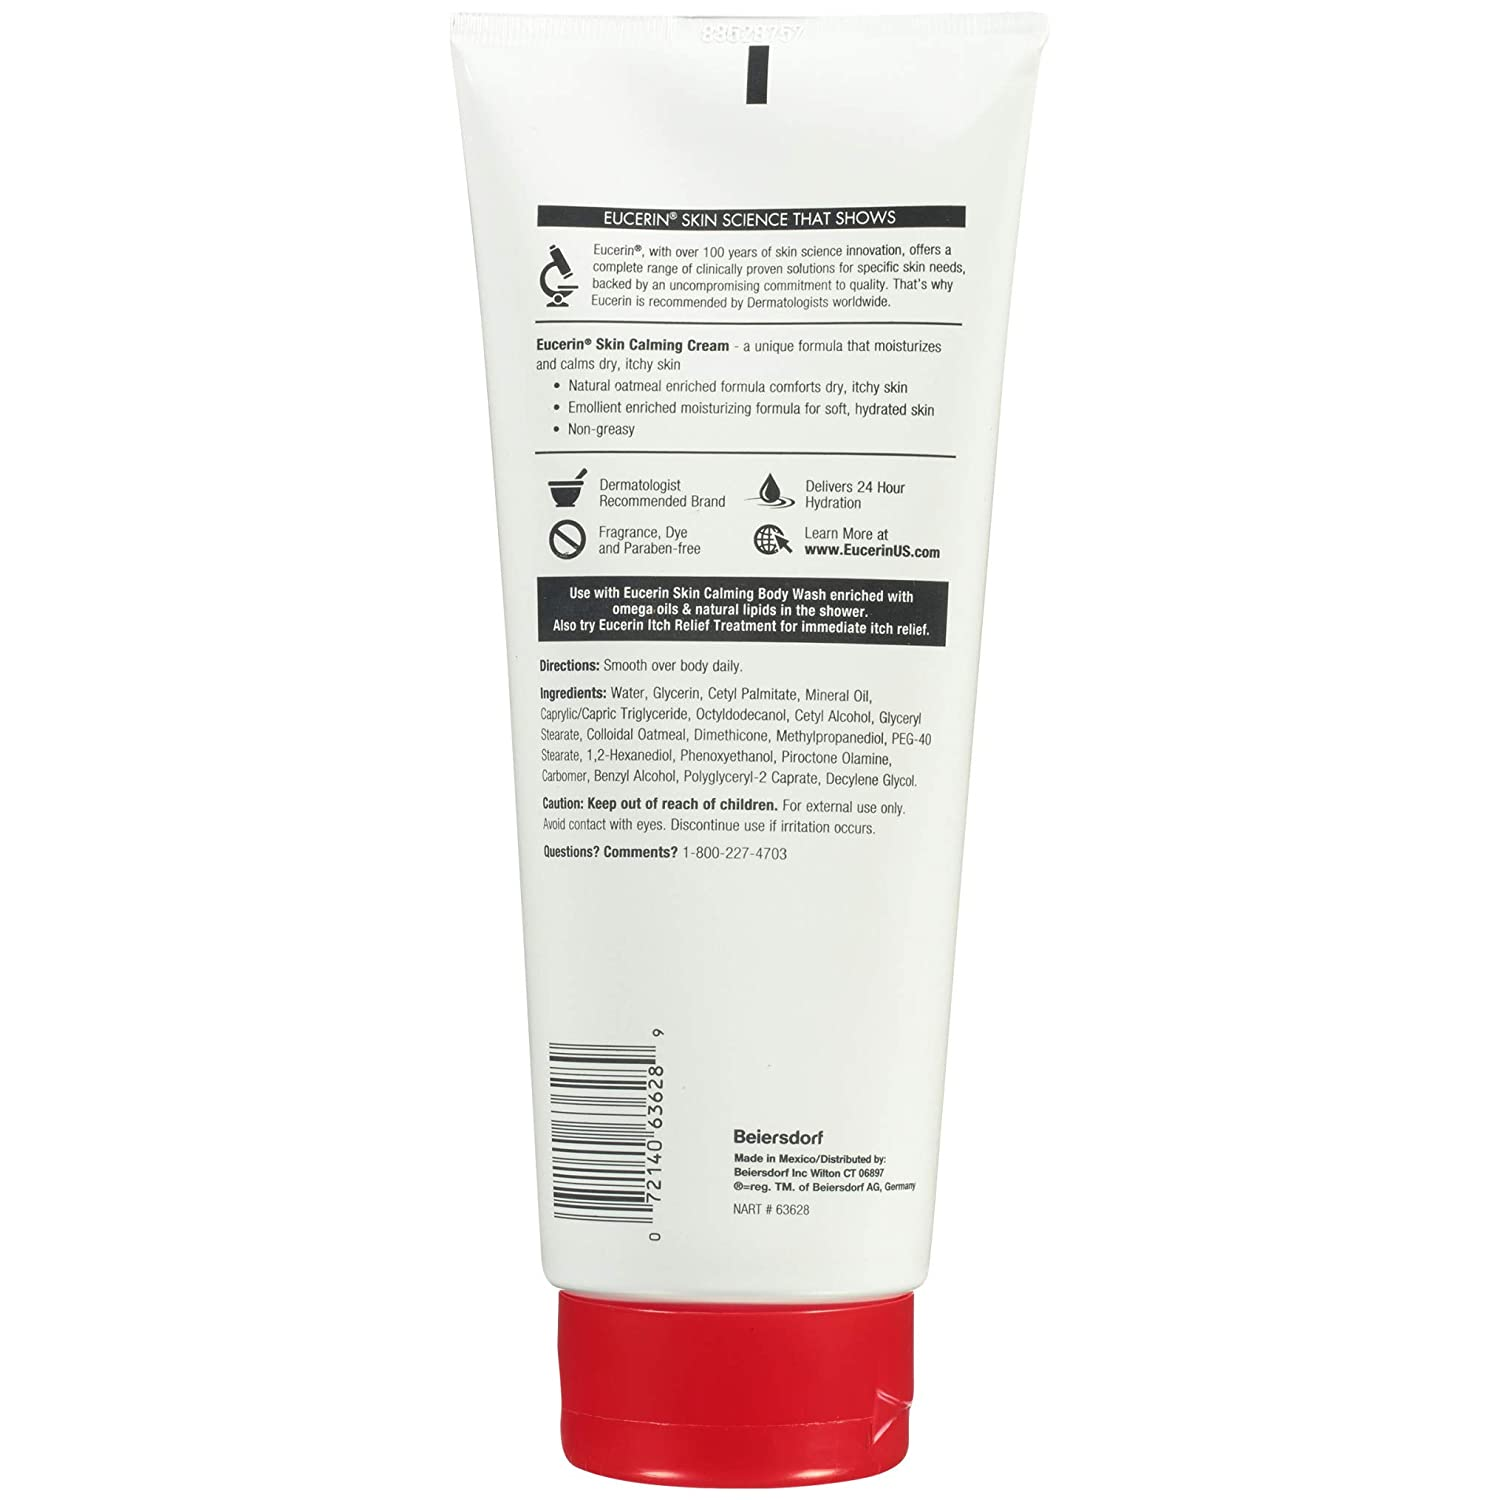 Eucerin Skin Calming Cream - Full Body Lotion for Dry, Itchy Skin, Natural Oatmeal Enriched - 14 oz. Tube : Body Gels And Creams : Beauty